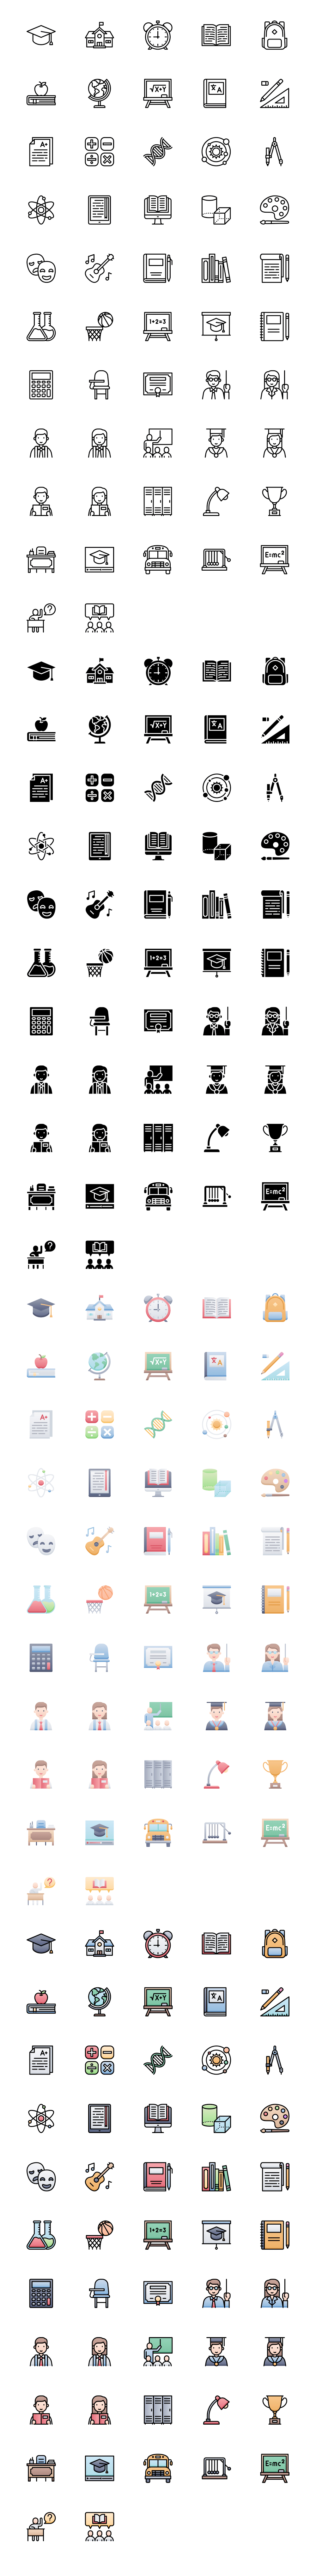 53 Education Free Icons - Free icons for education, schools, university, teachers, students, studying, books, and everything related to learning.